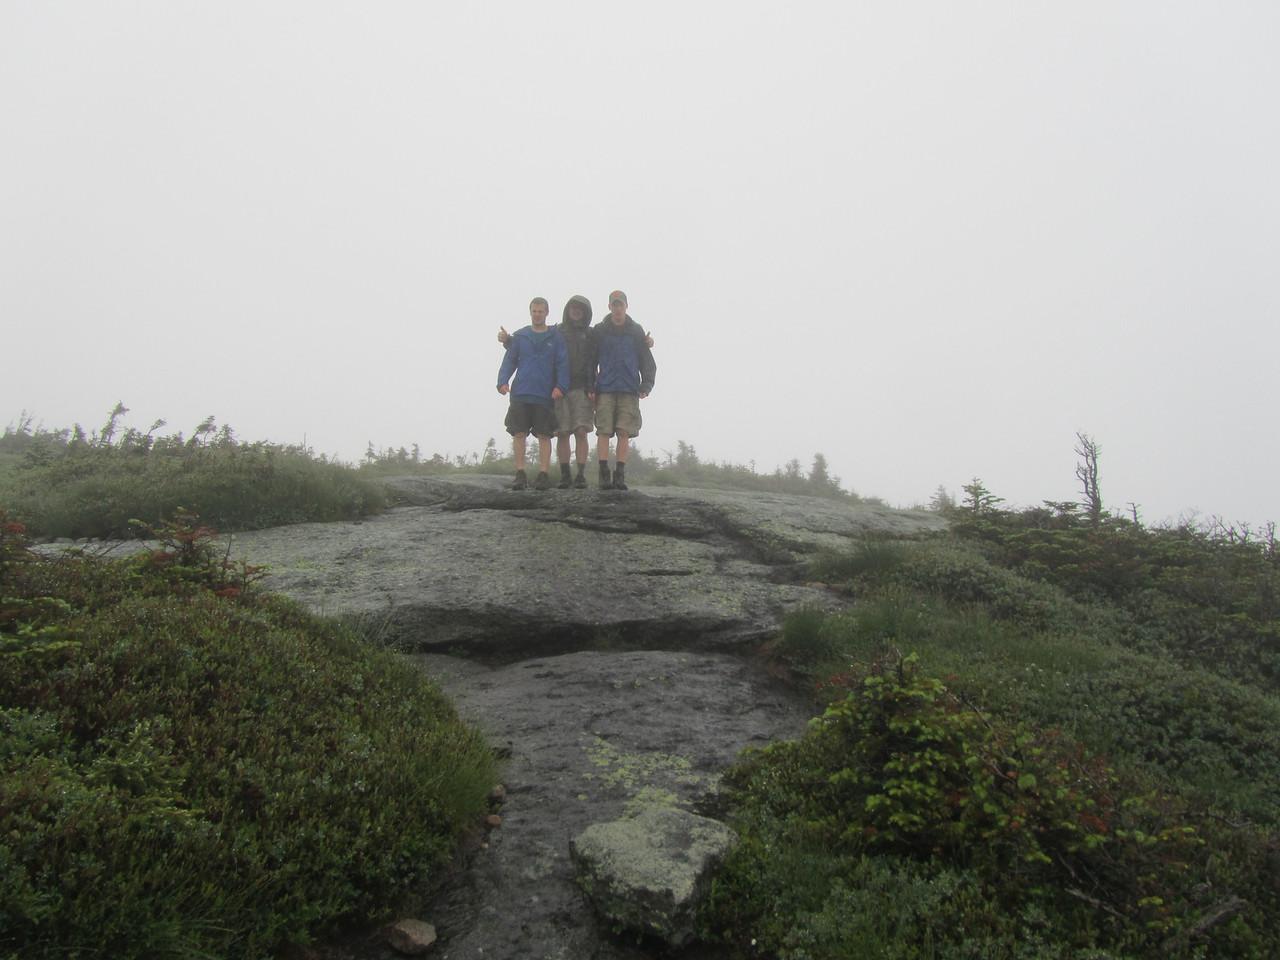 At the summit of Colden in the pouring rain. Smiles gone from the boys faces. Bob is still going strong! Two thumbs up. Men rule, boys drool.